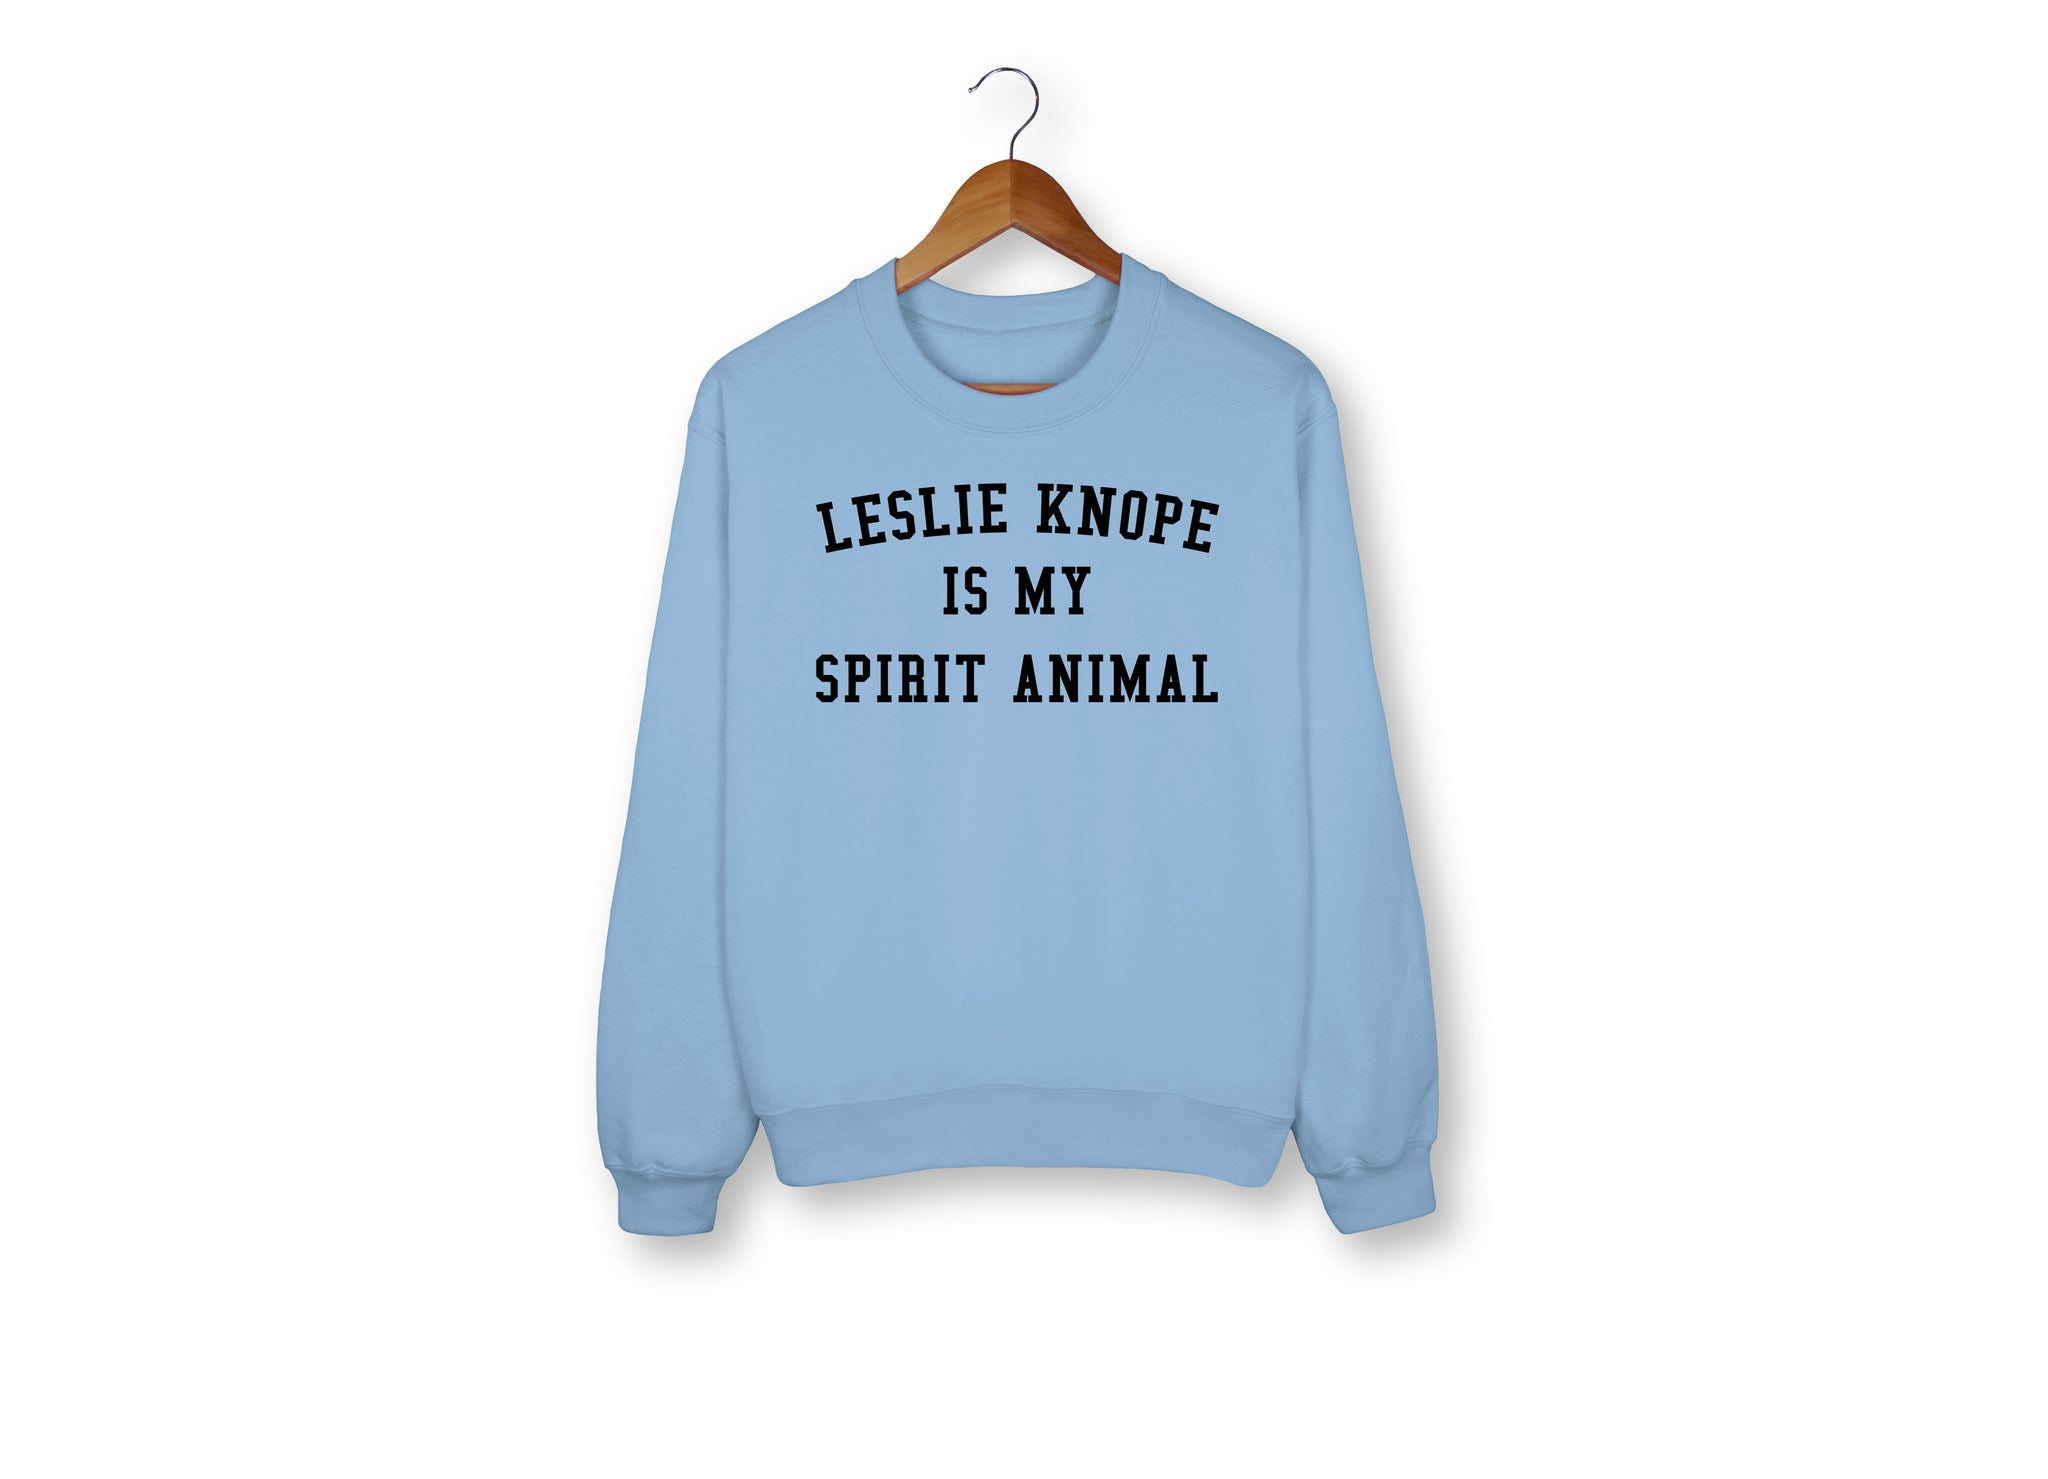 Leslie Knope Is My Spirit Animal Sweatshirt